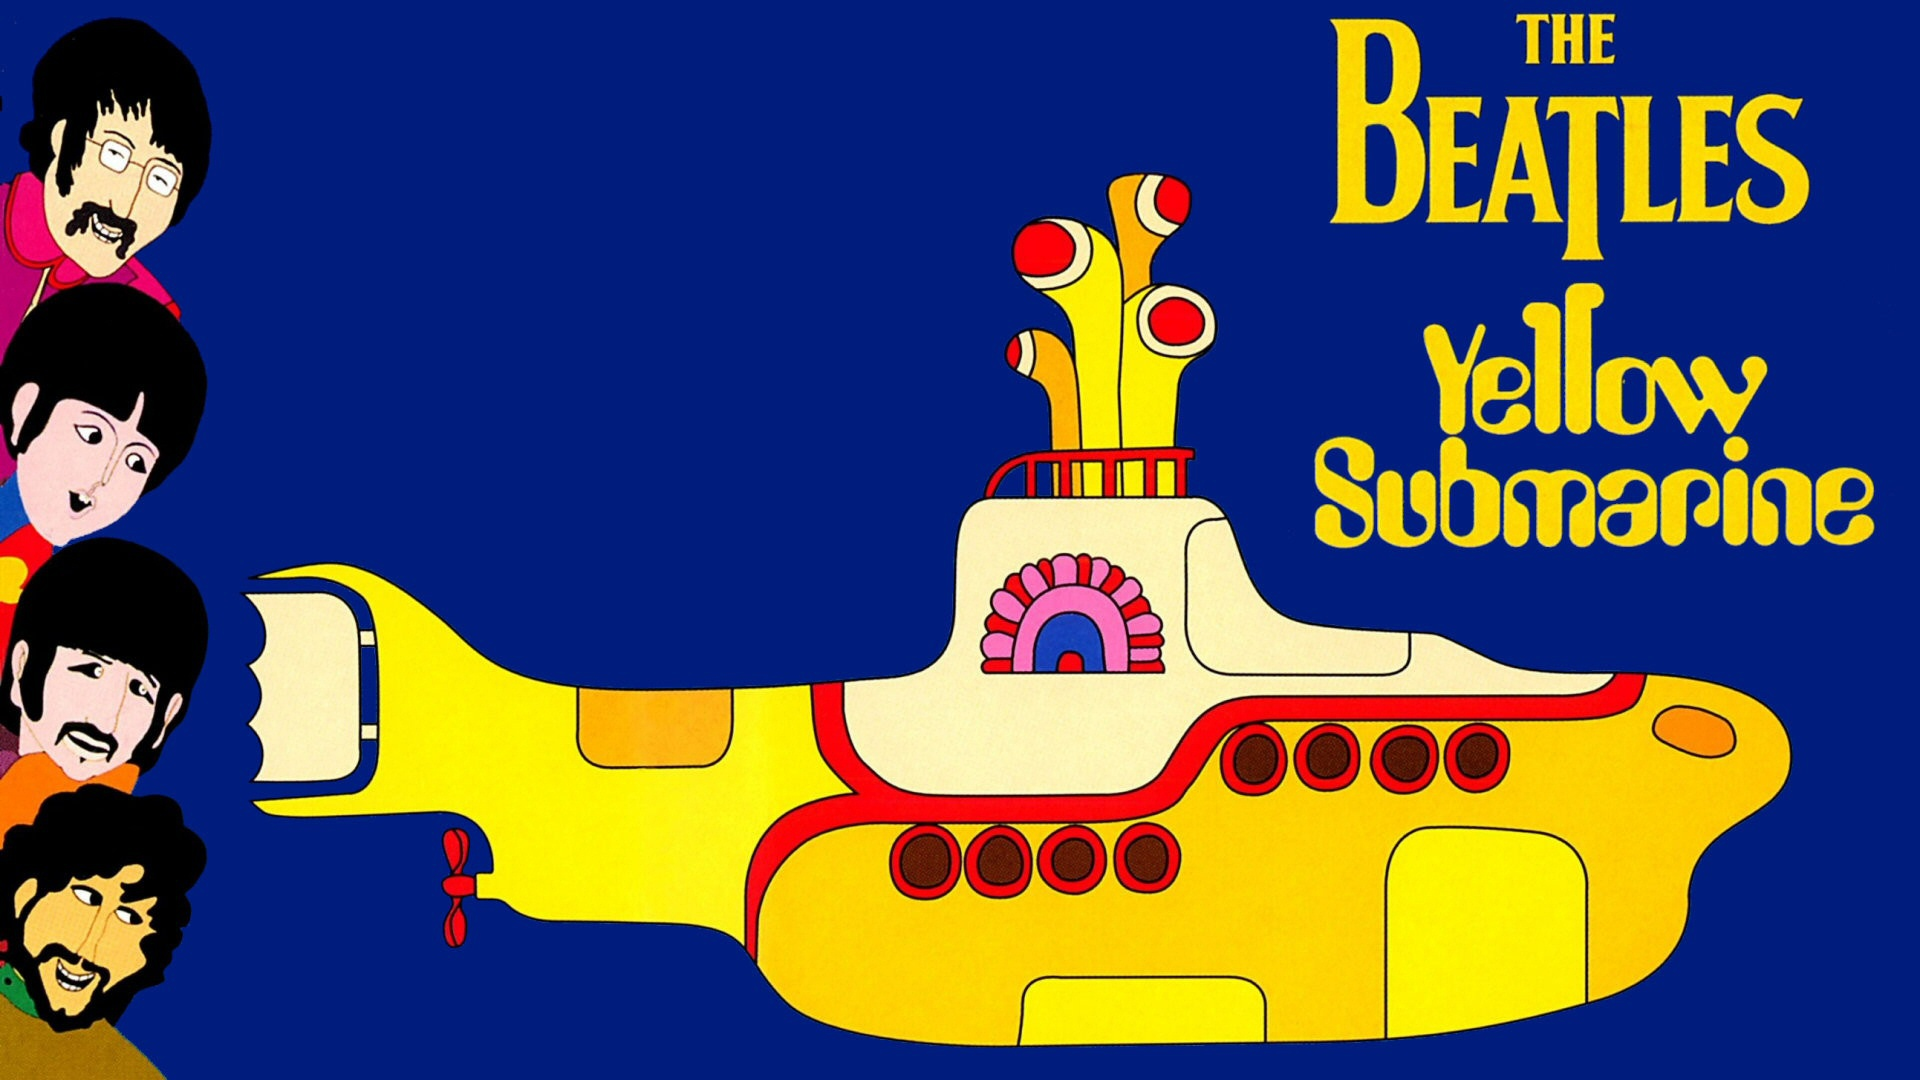 original wallpaper download: Painting Andy Warhol Yellow submarine - 1920x1080